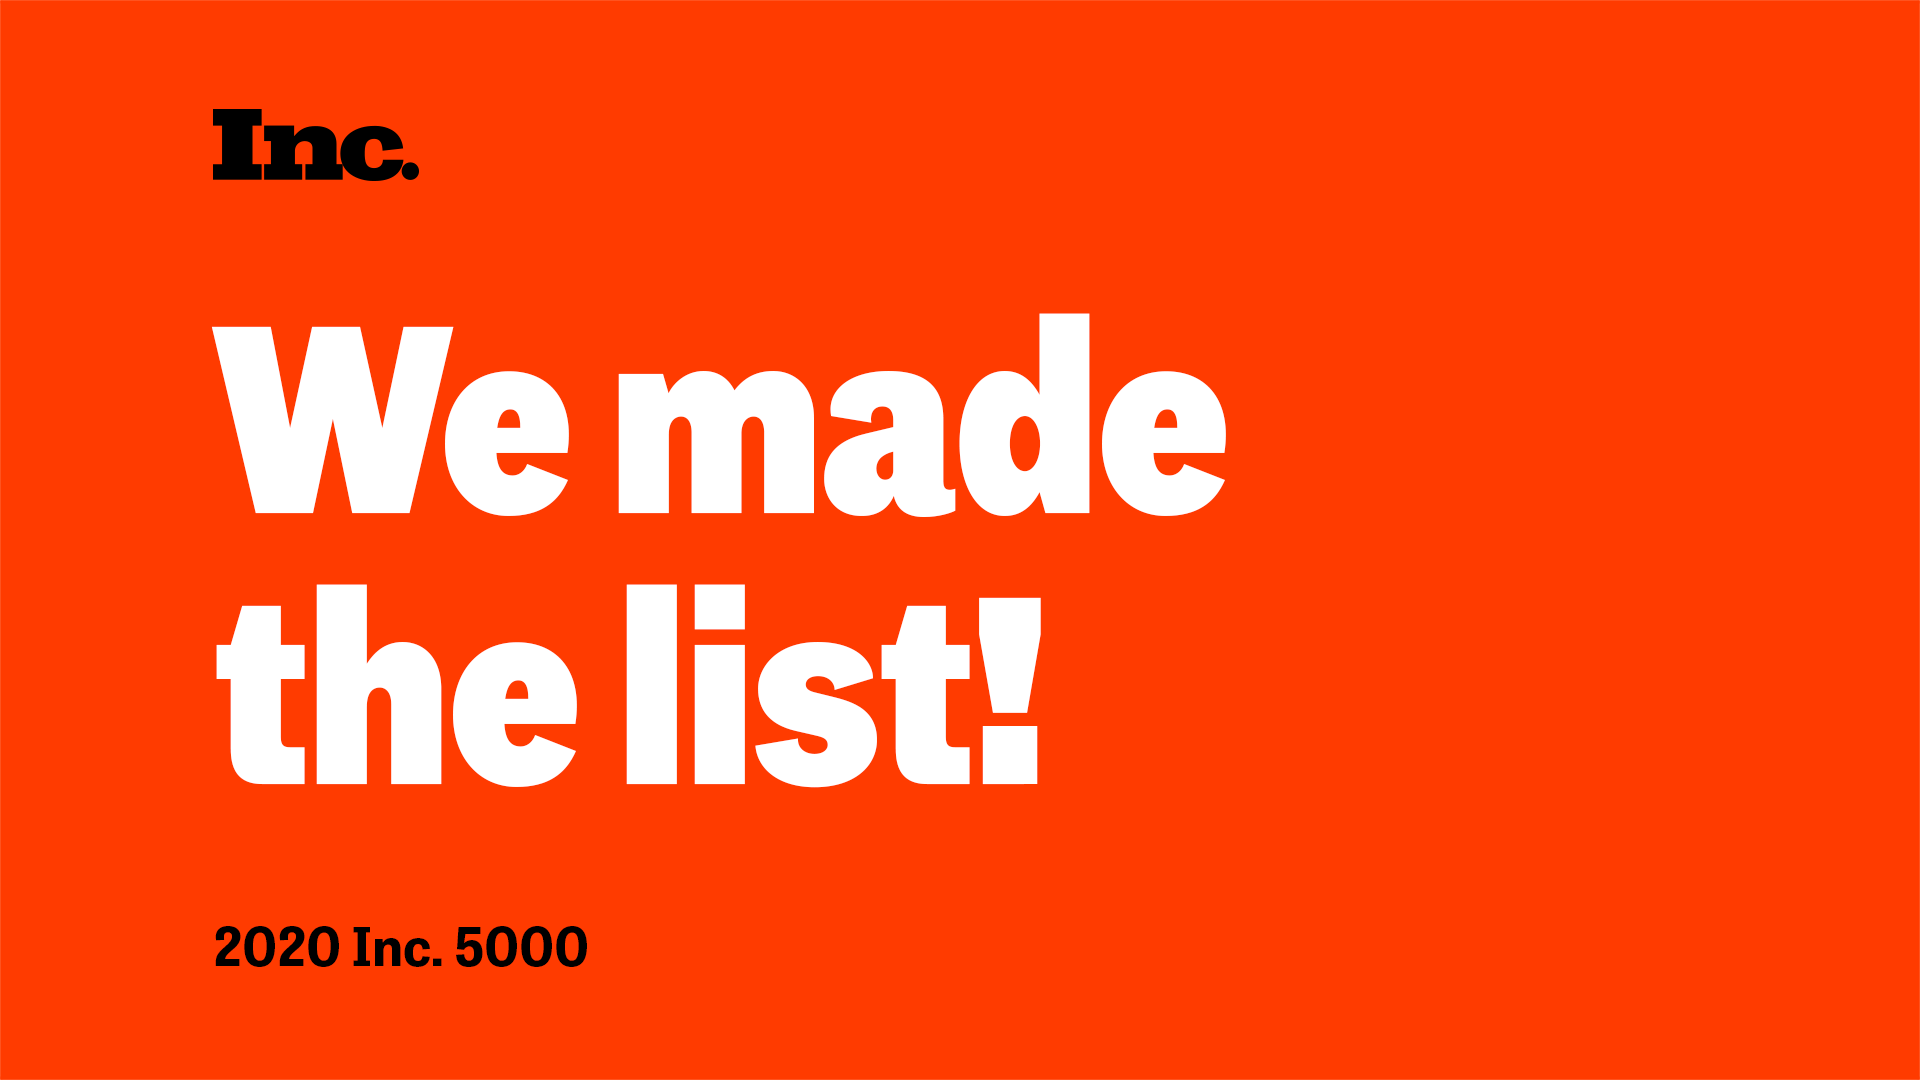 2020 Inc. 5000 We made the list!